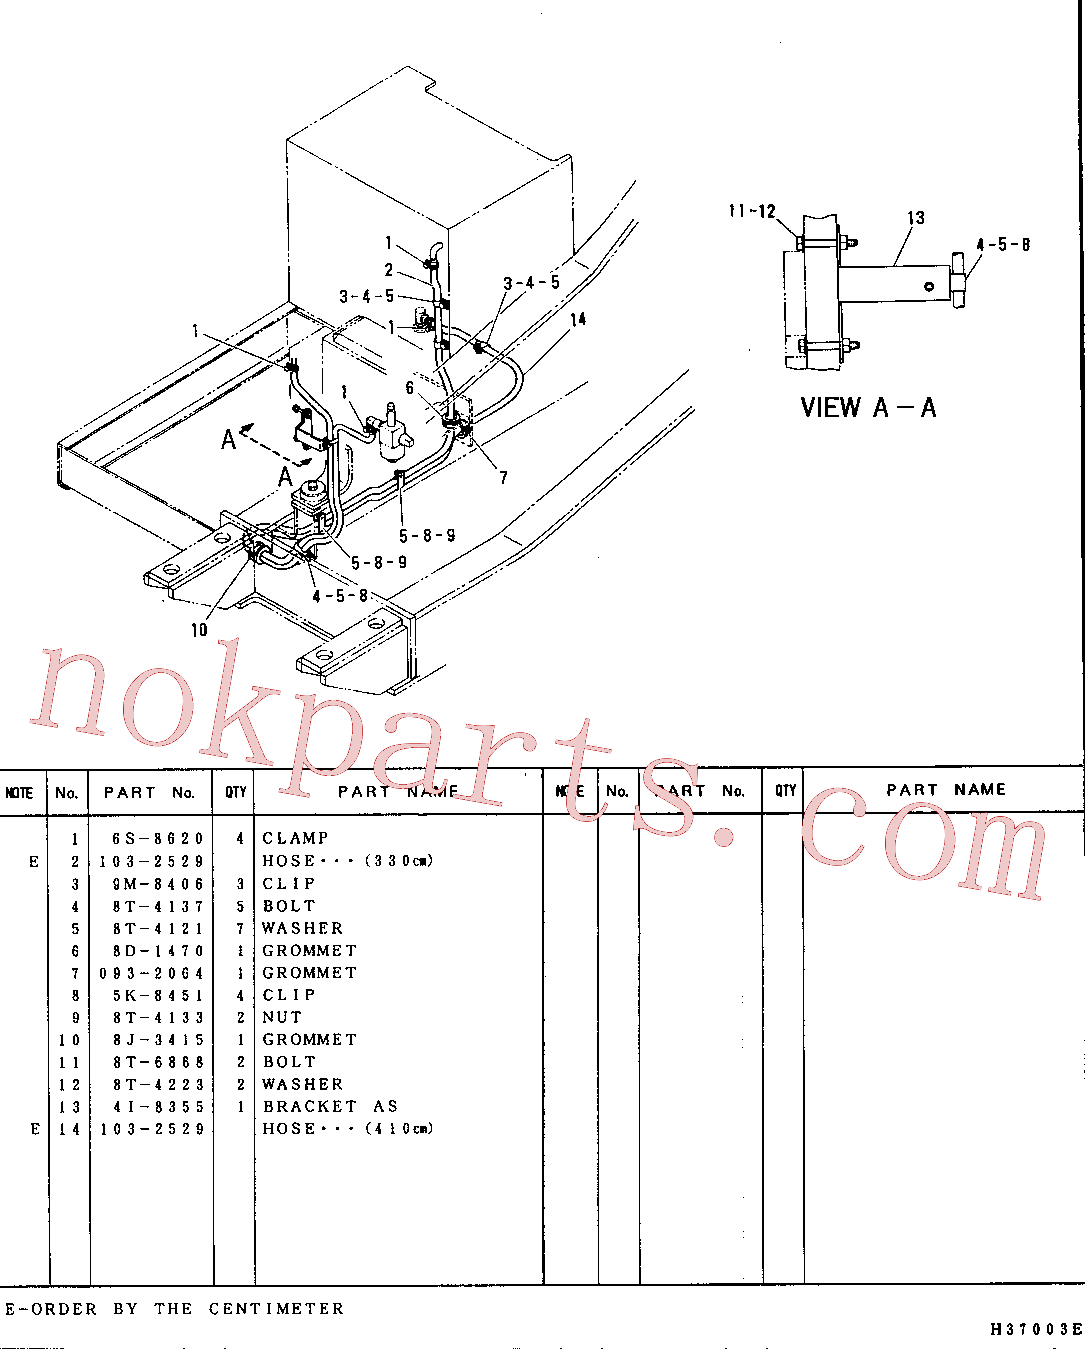 CAT 8J-3415 for 657B Wheel Tractor(WTS) fuel system and governor 7Y-2708 Assembly